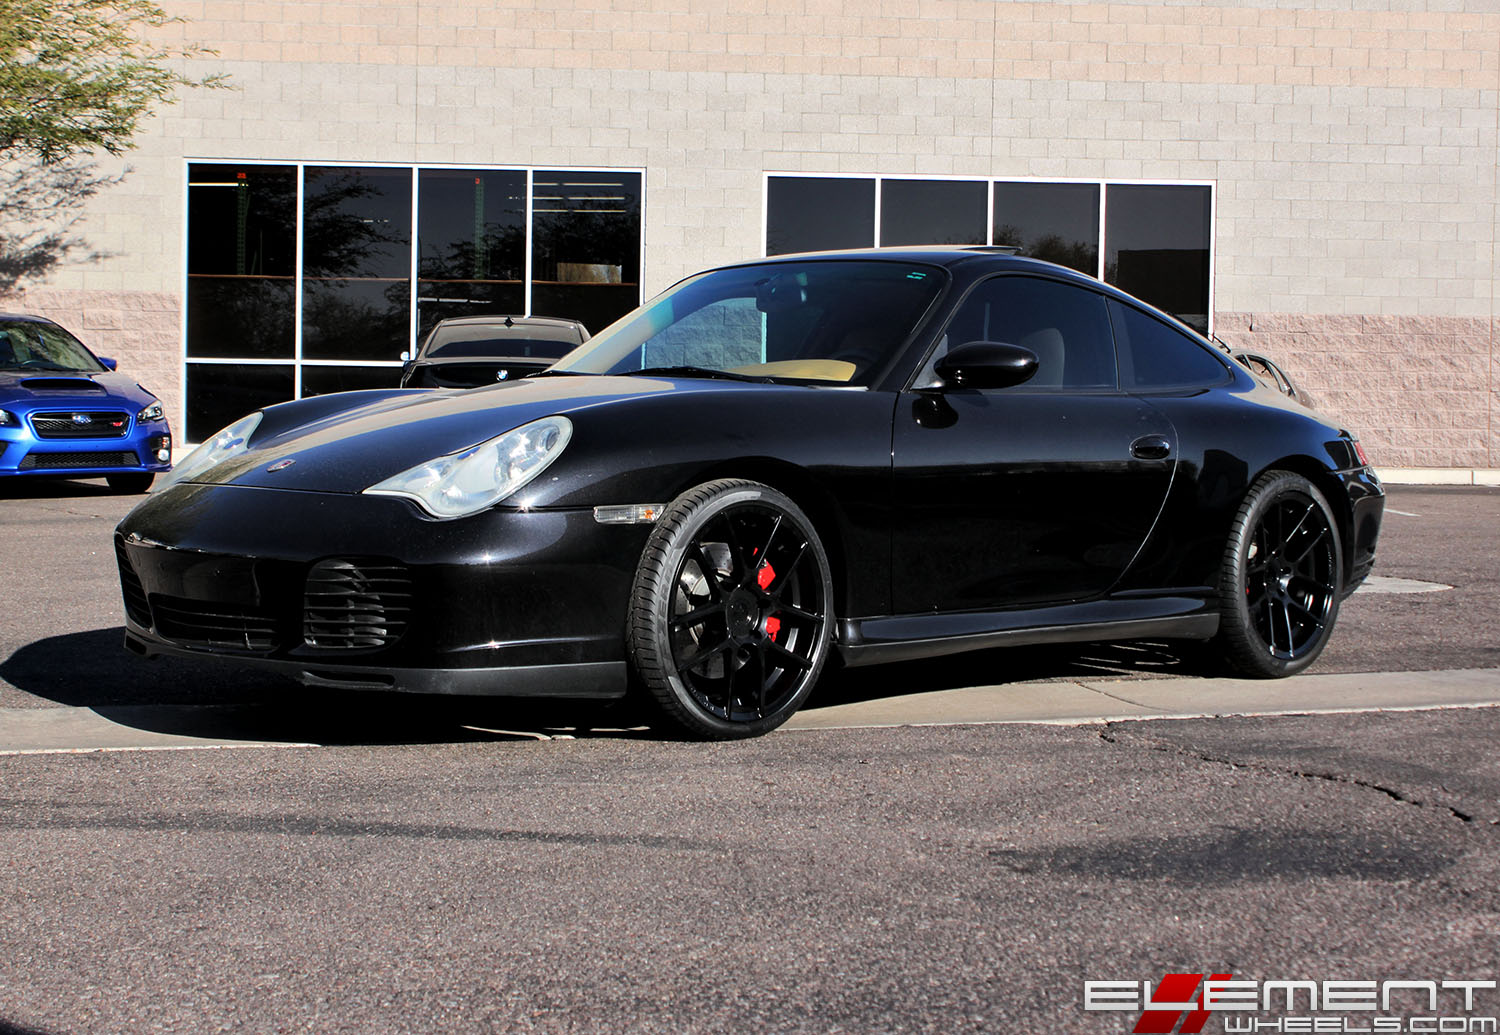 Porsche Wheels Custom Rim And Tire Packages